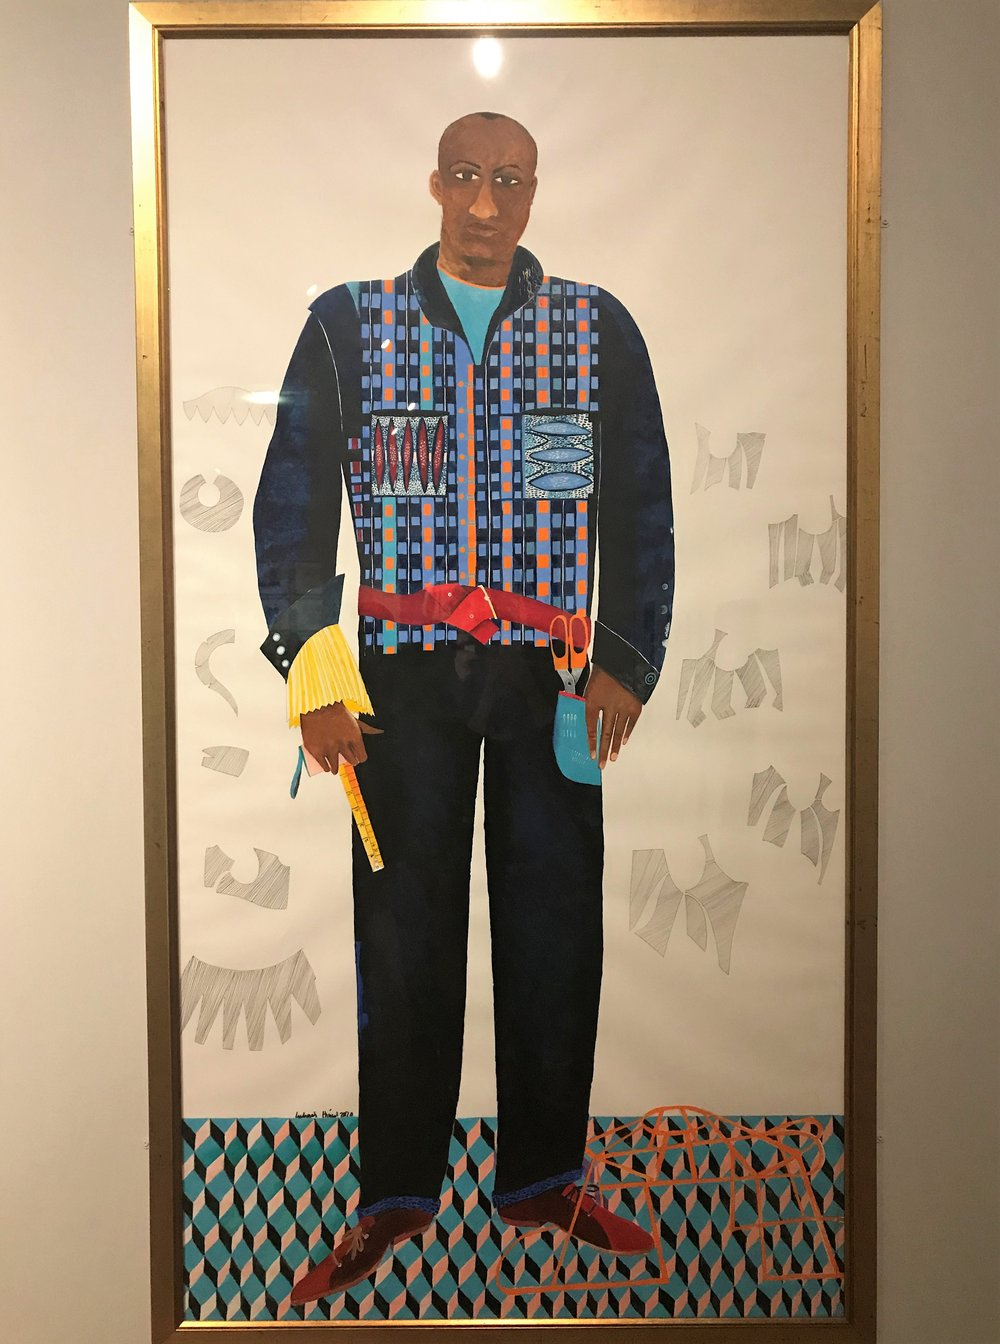 The Tailor  (2010) Lubaina Himid, in Gallery 12